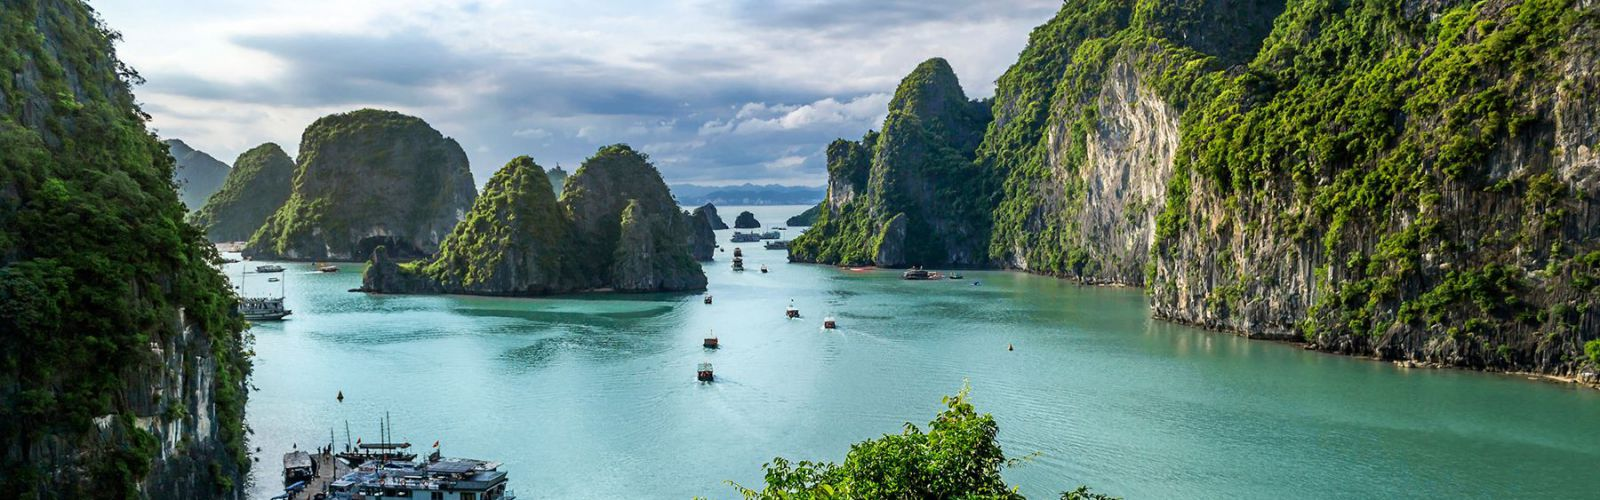 South to North Vietnam Tours